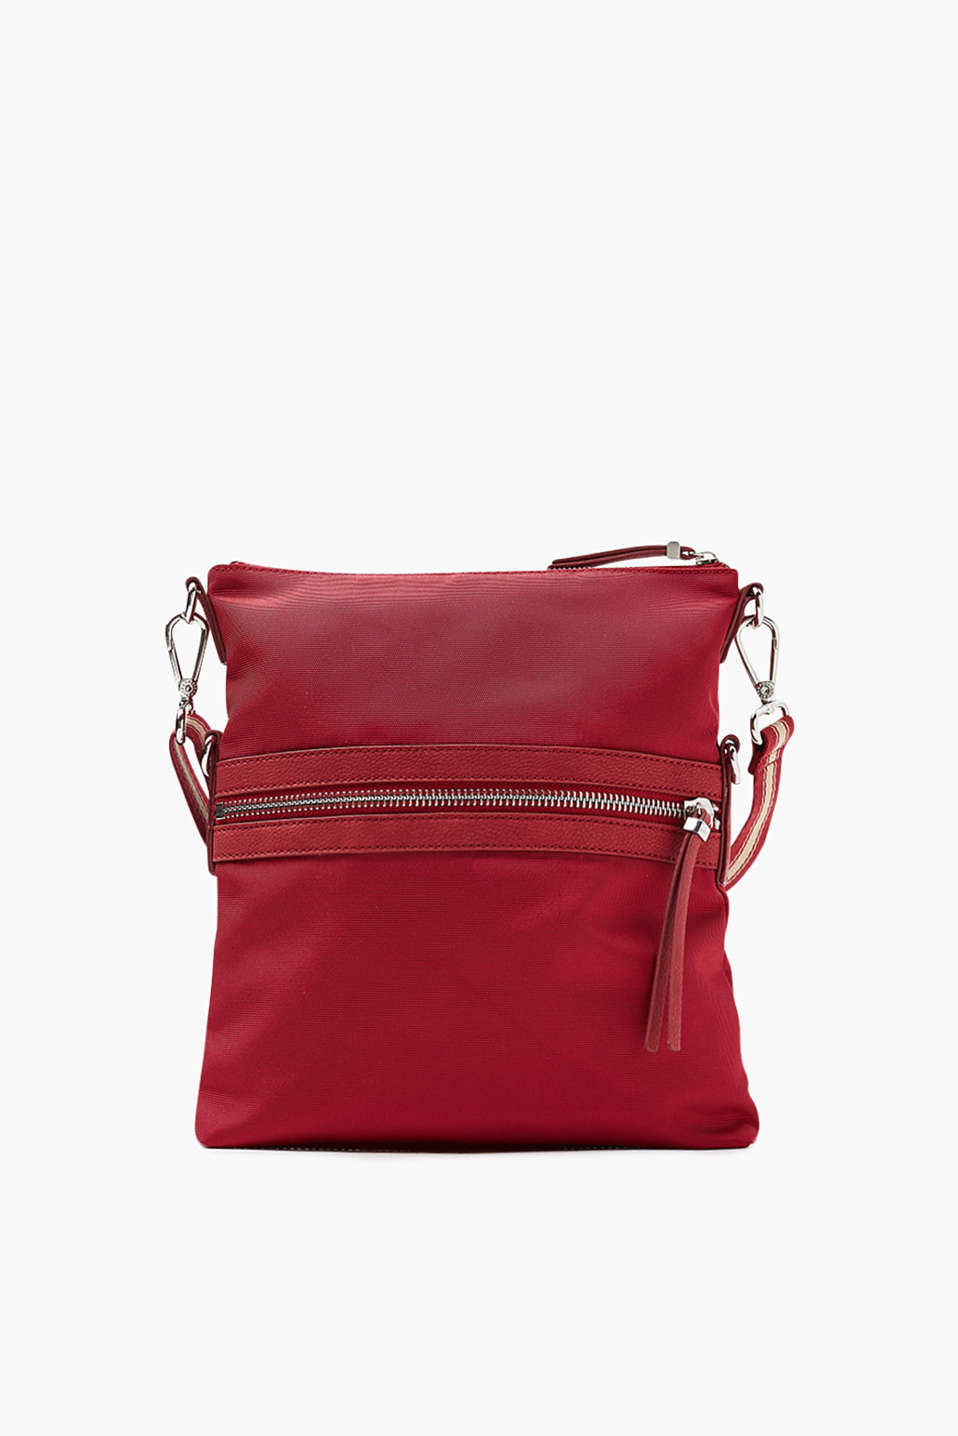 Soft shoulder bag with a grainy woven texture, adjustable in height